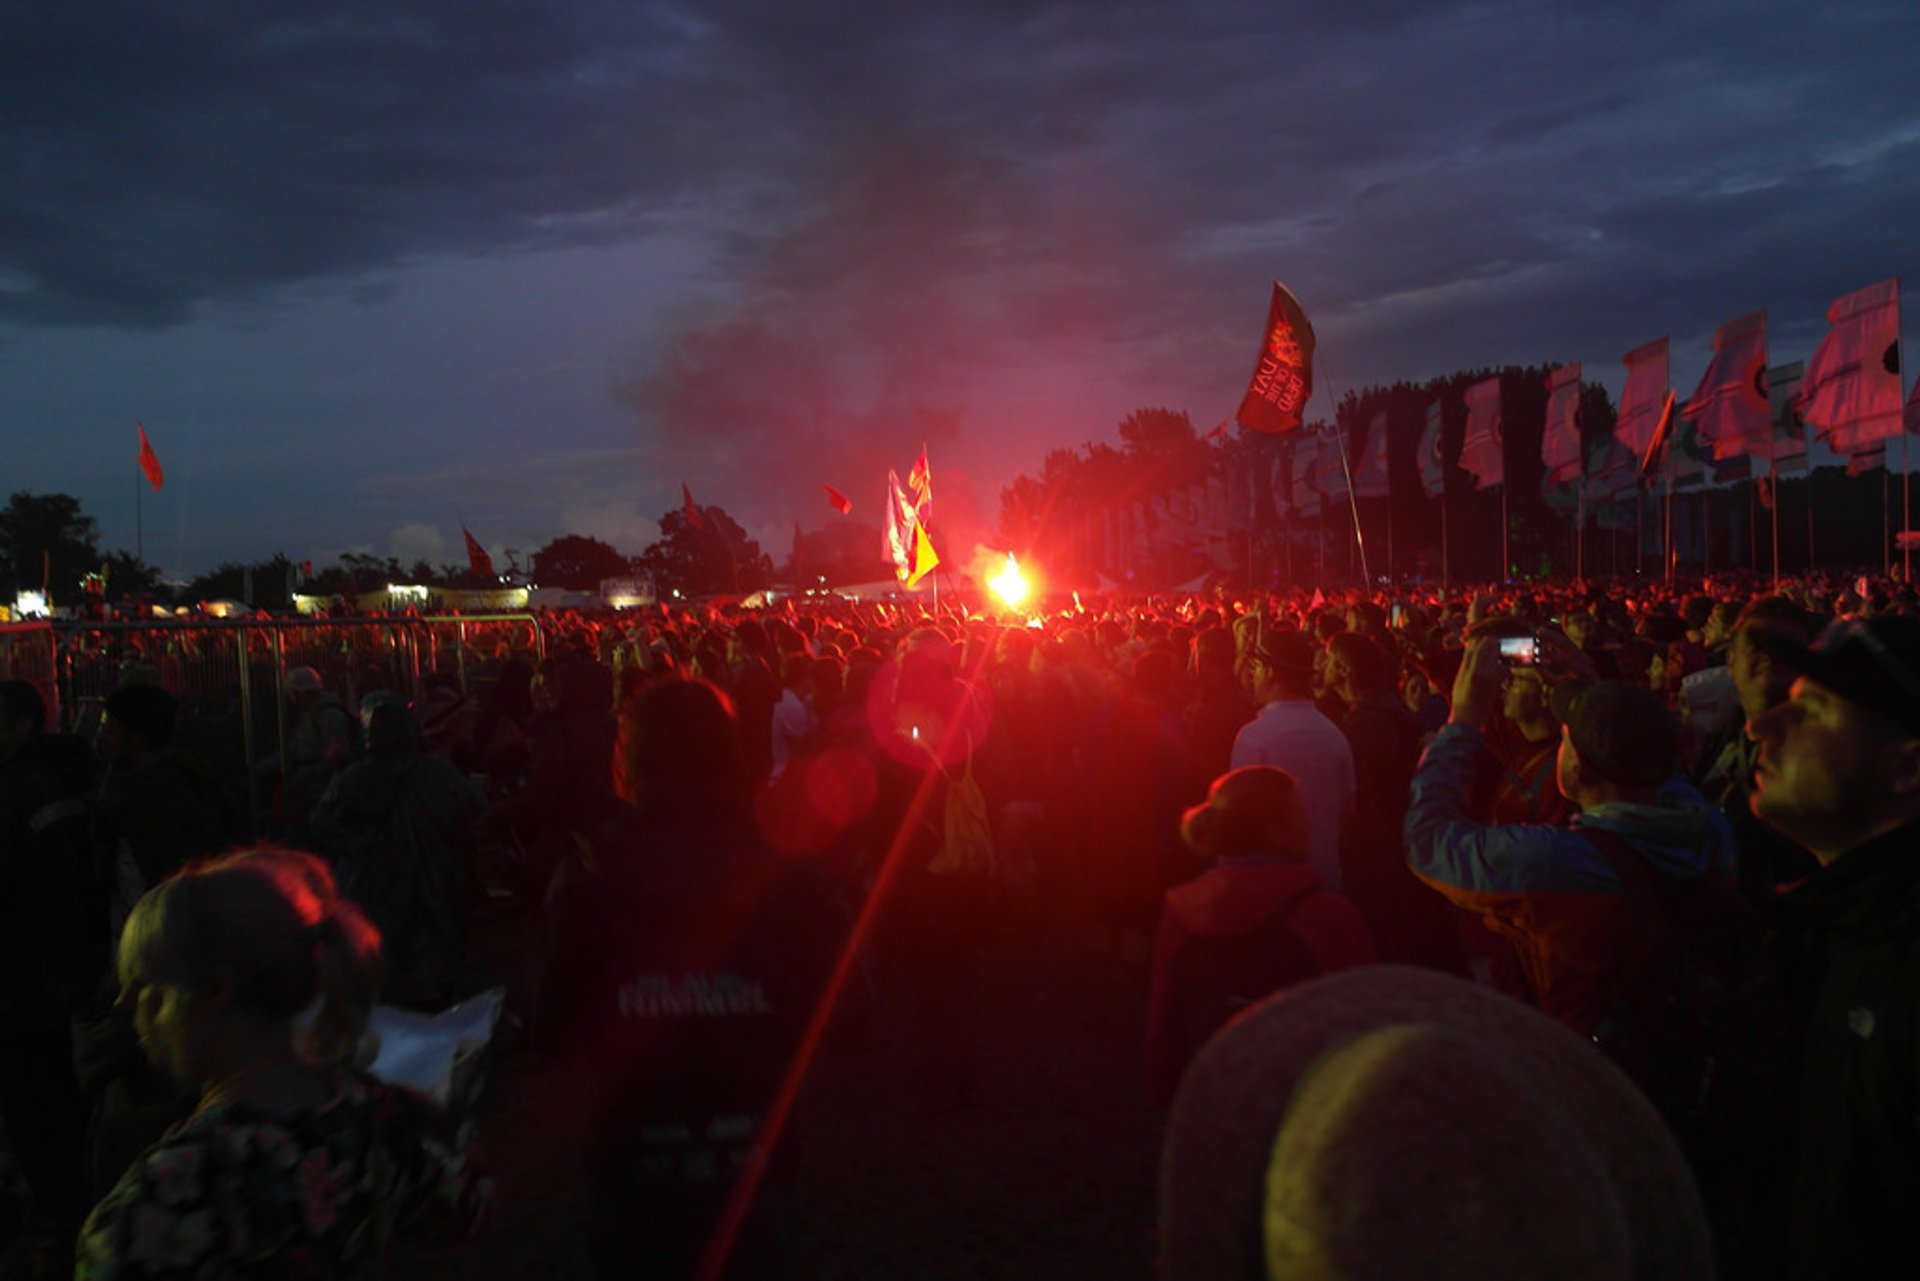 Glastonbury Festival in England - Best Season 2019